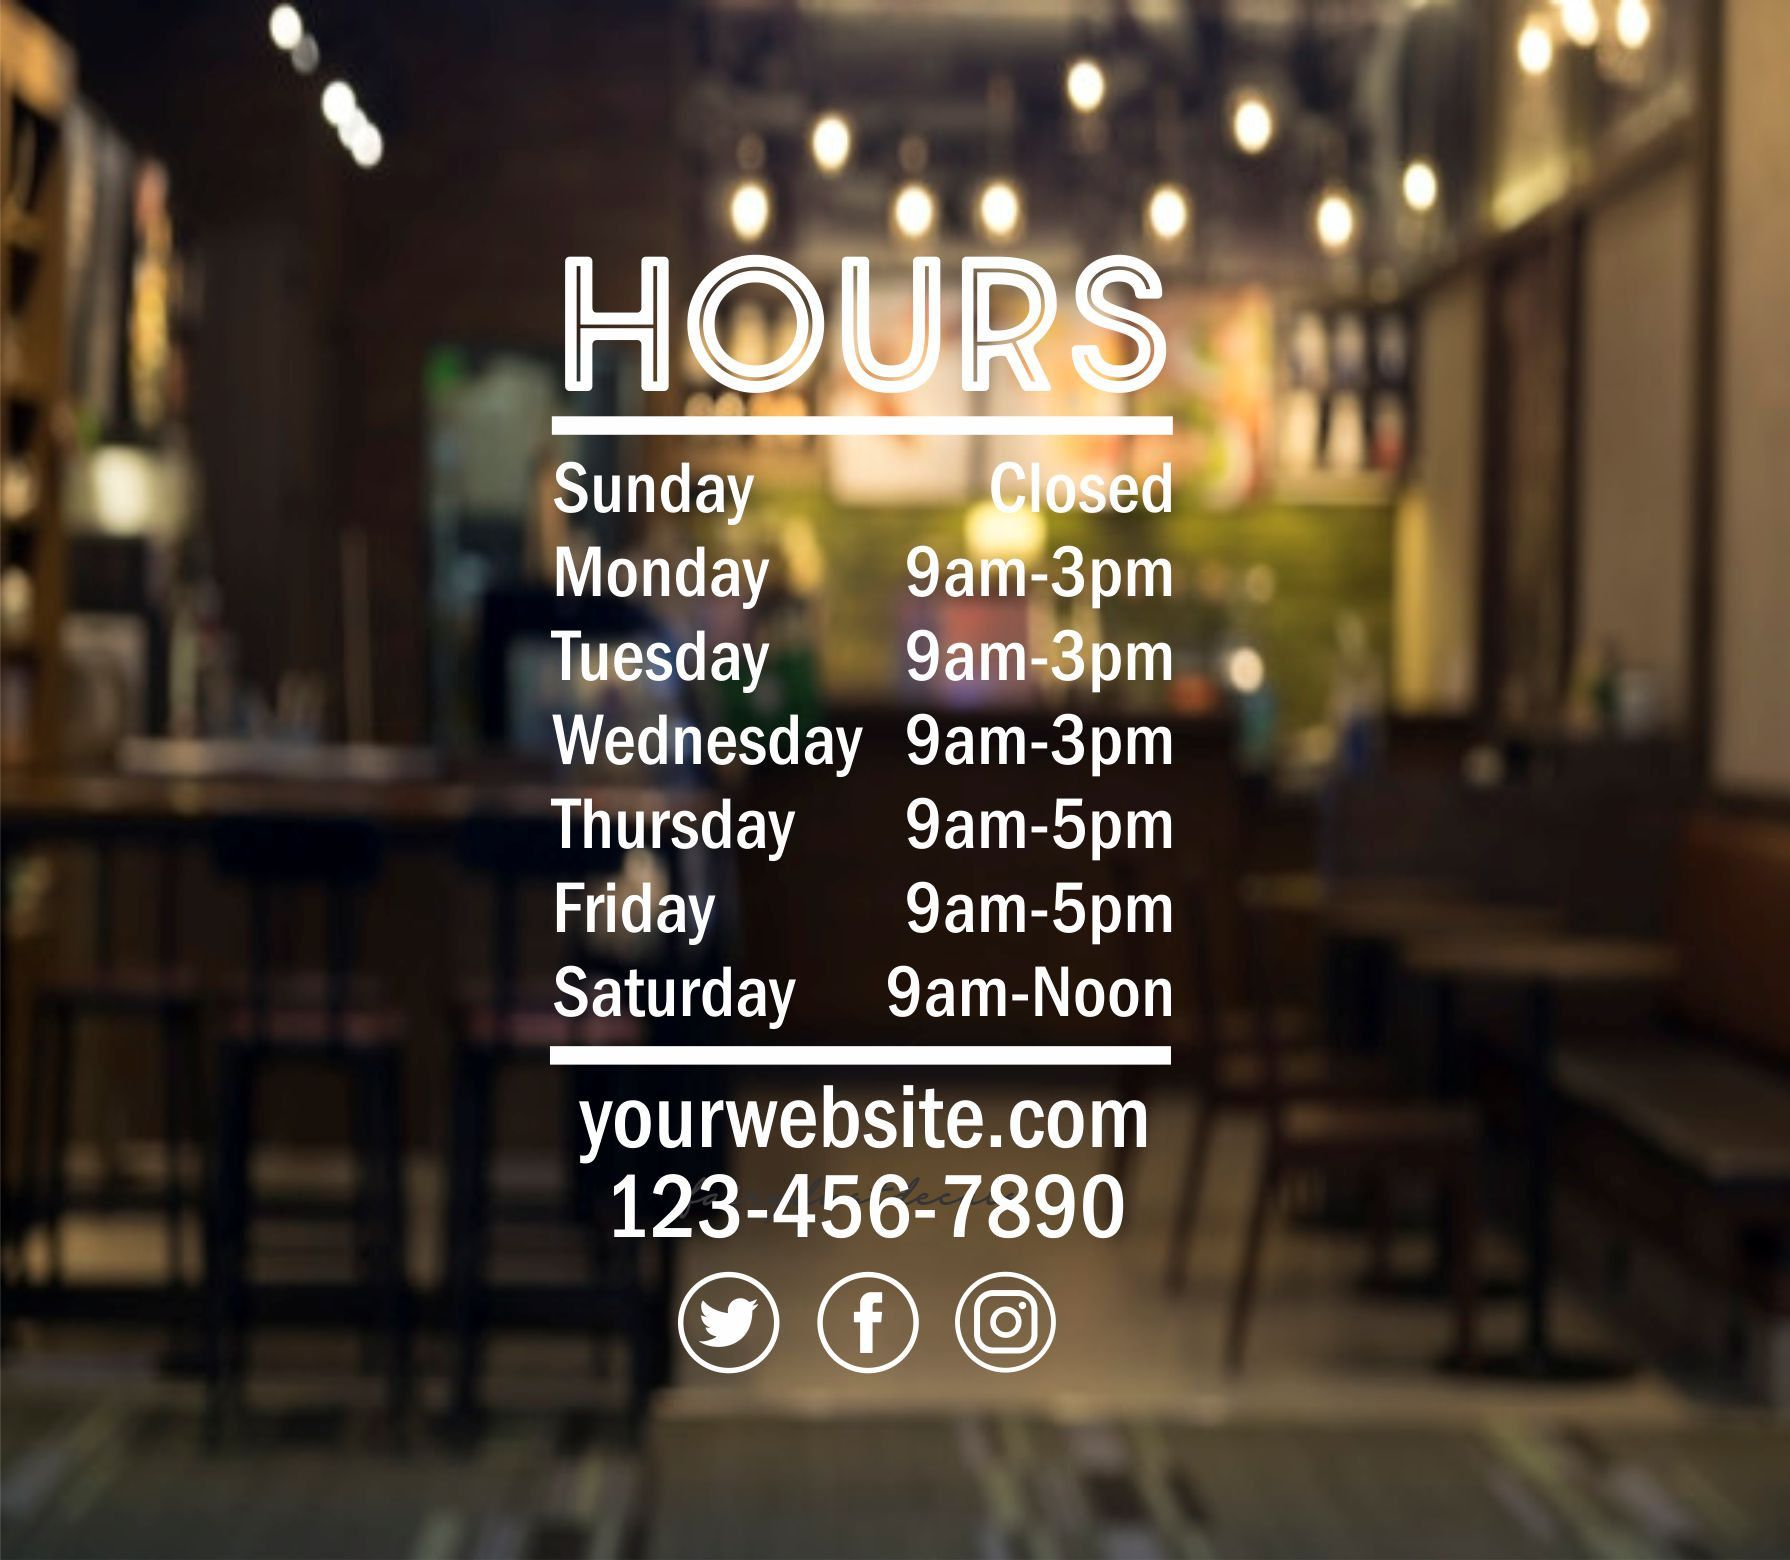 Store Hours Decal, Business Hours Of Operation Window Sign